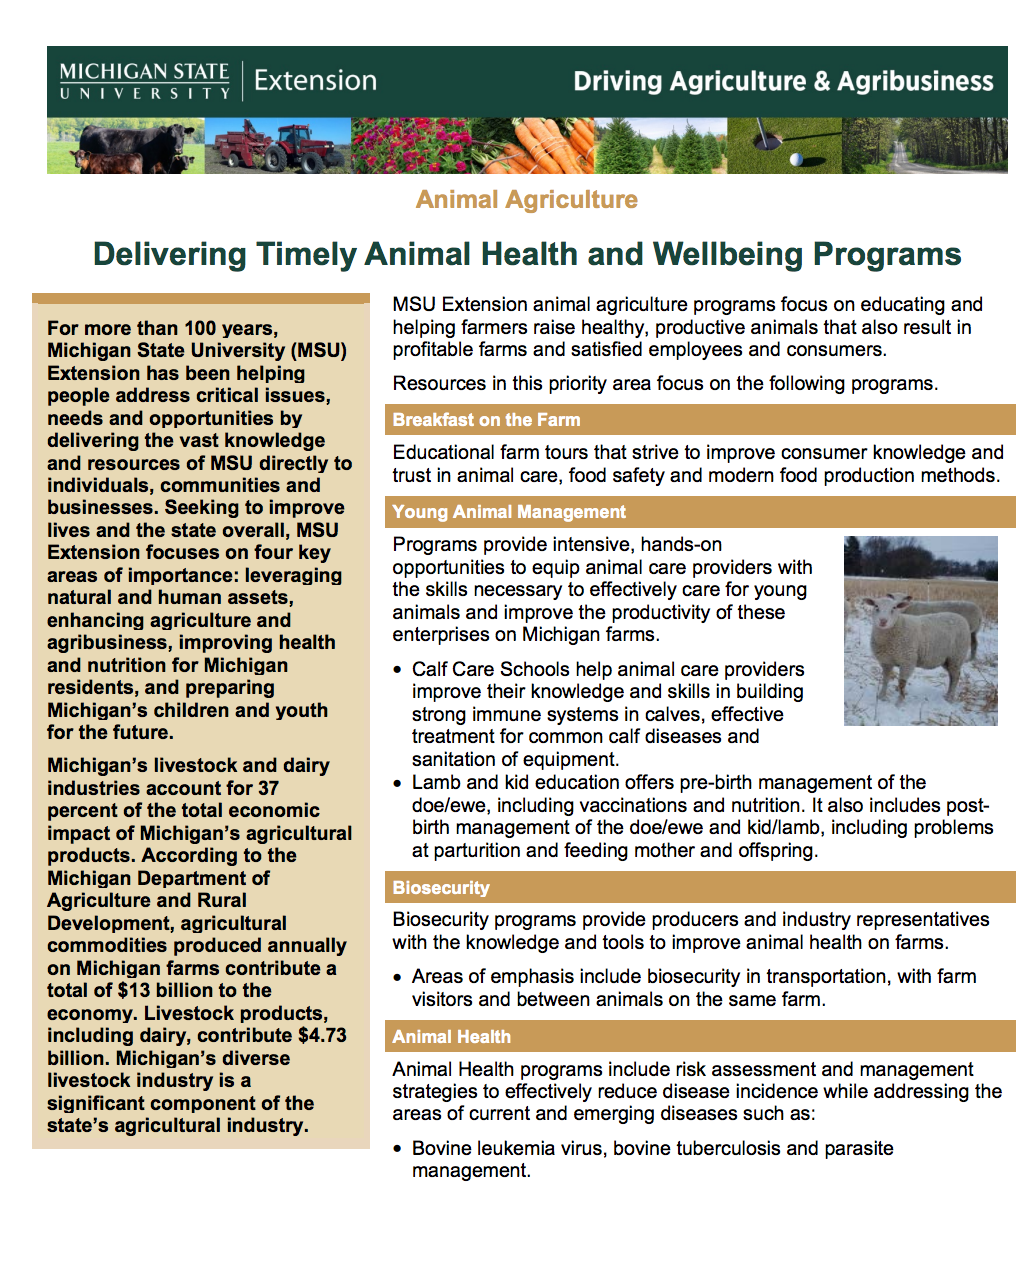 Animal Agriculture: Delivering Timely Animal Health and Wellbeing Programs